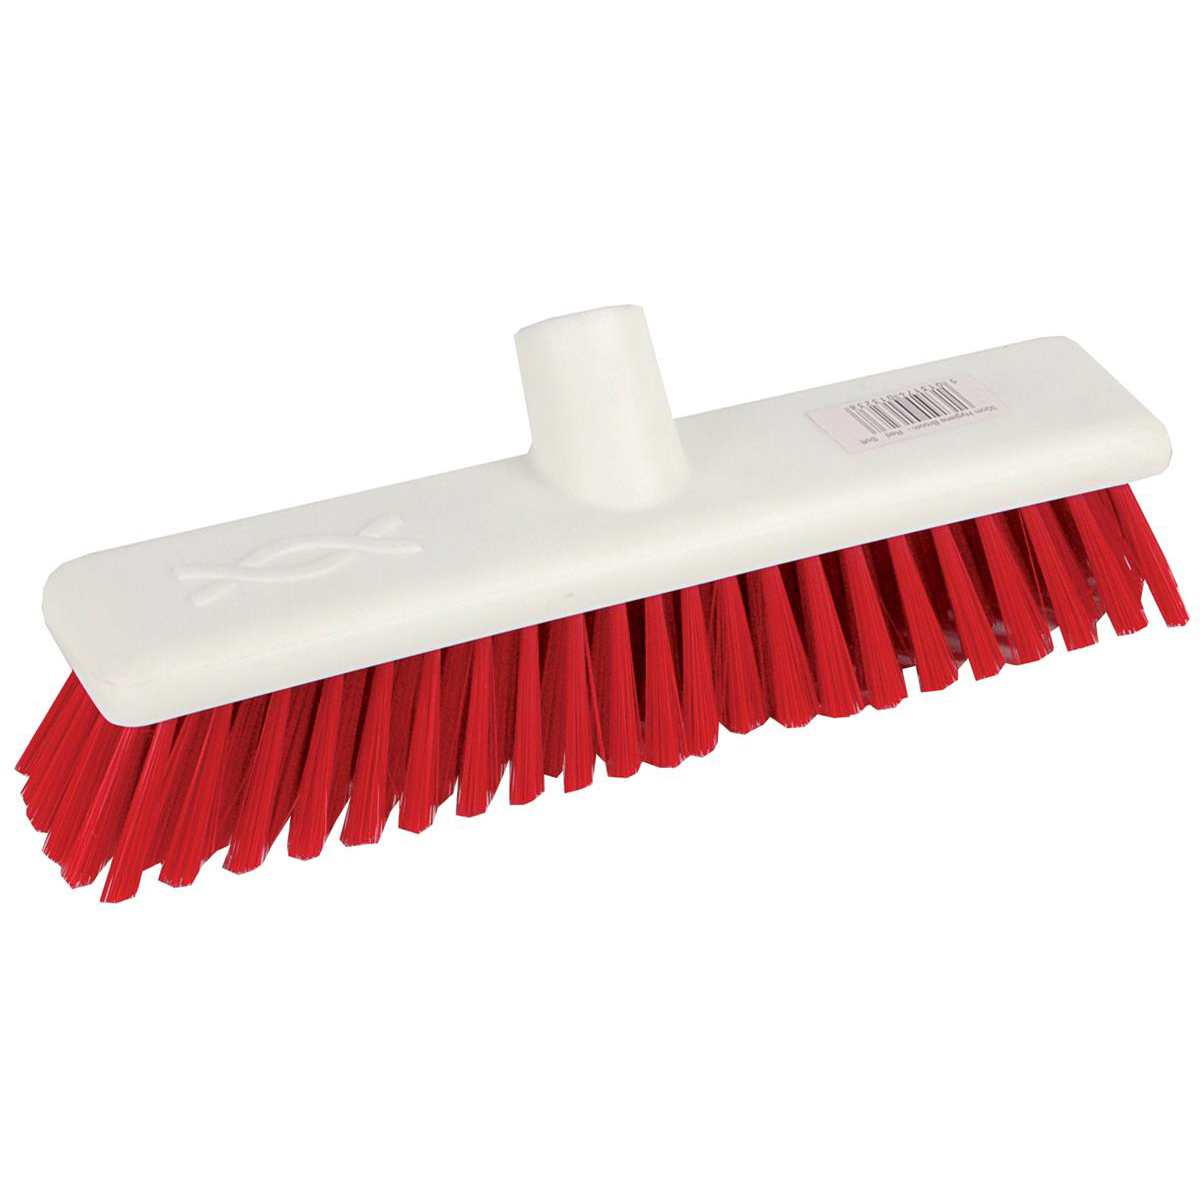 Brushes & Brooms Robert Scott & Sons Abbey Hygiene Broom 12inch Washable Soft Broom Head Red Ref BHYRS12SR